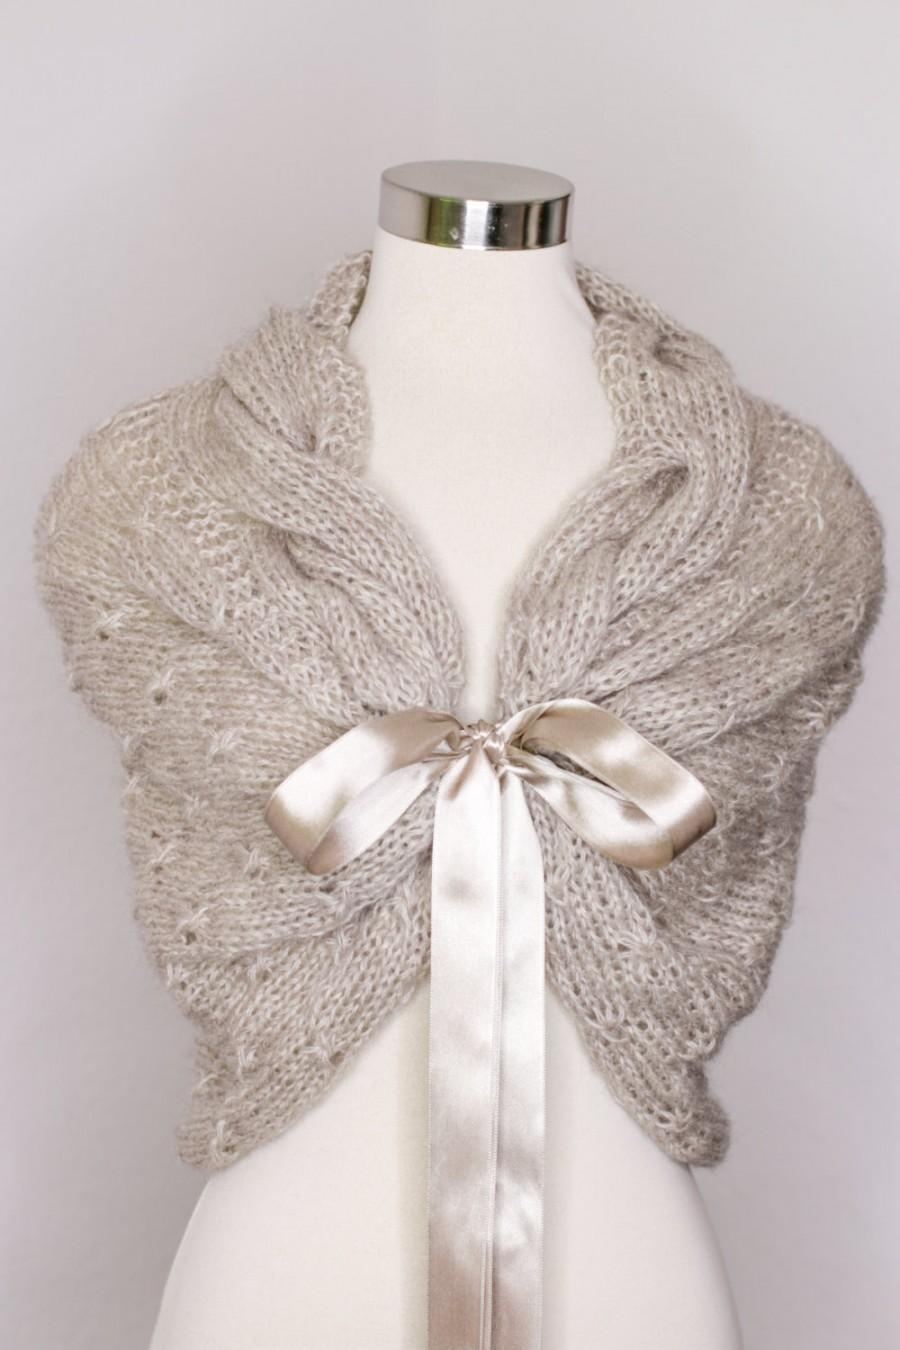 Mariage - Bridal Bolero,Wedding Shrug,Wedding Cape, Bridal shawl,Wedding Shawl, Bridal Wrap,Winter Wedding Shawl, Capelet ,Bridal Cape,Bridal Wrap